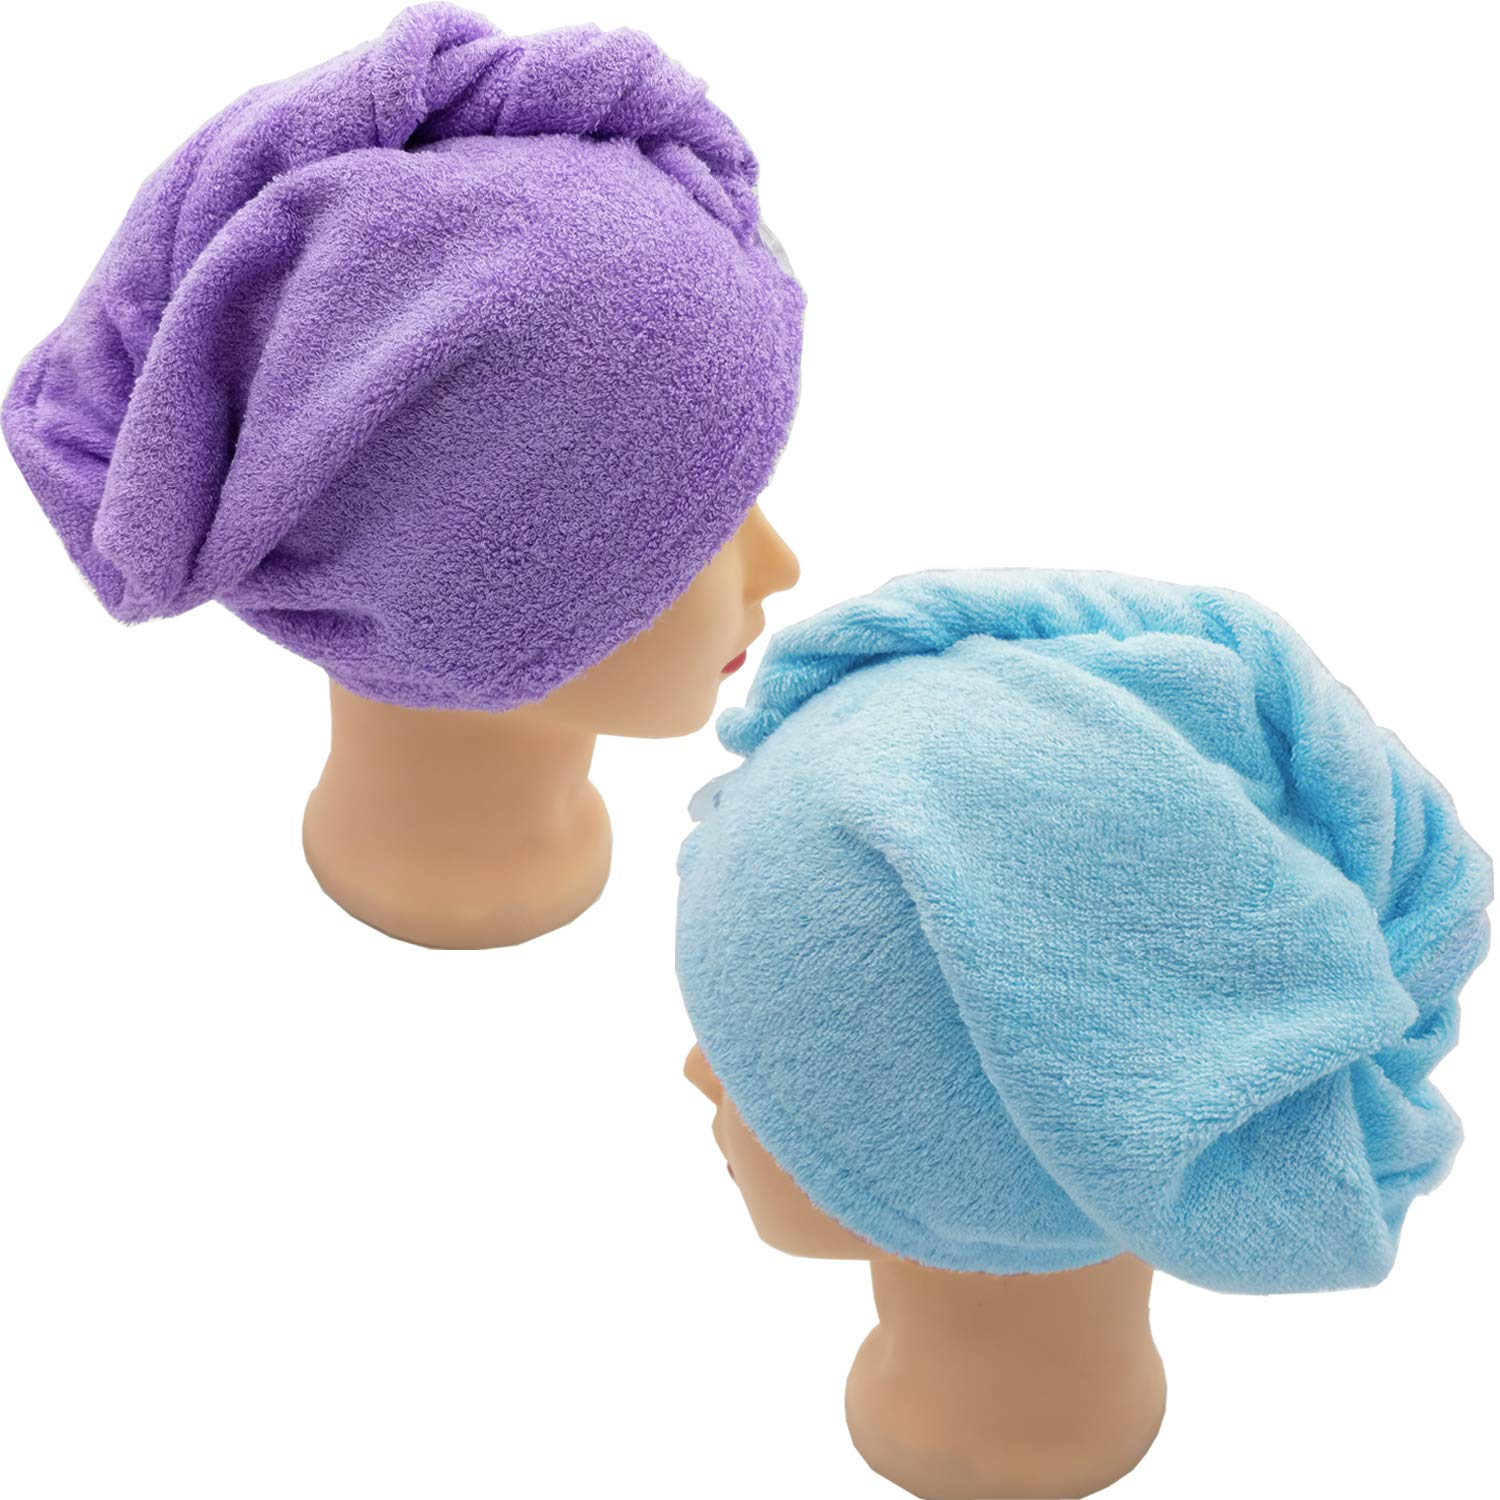 Hair Towel Wrap Long Hair Towels Turban Twisty Towel Bamboo Fiber Antibacterial Super Absorbent For women (Purple+Blue)